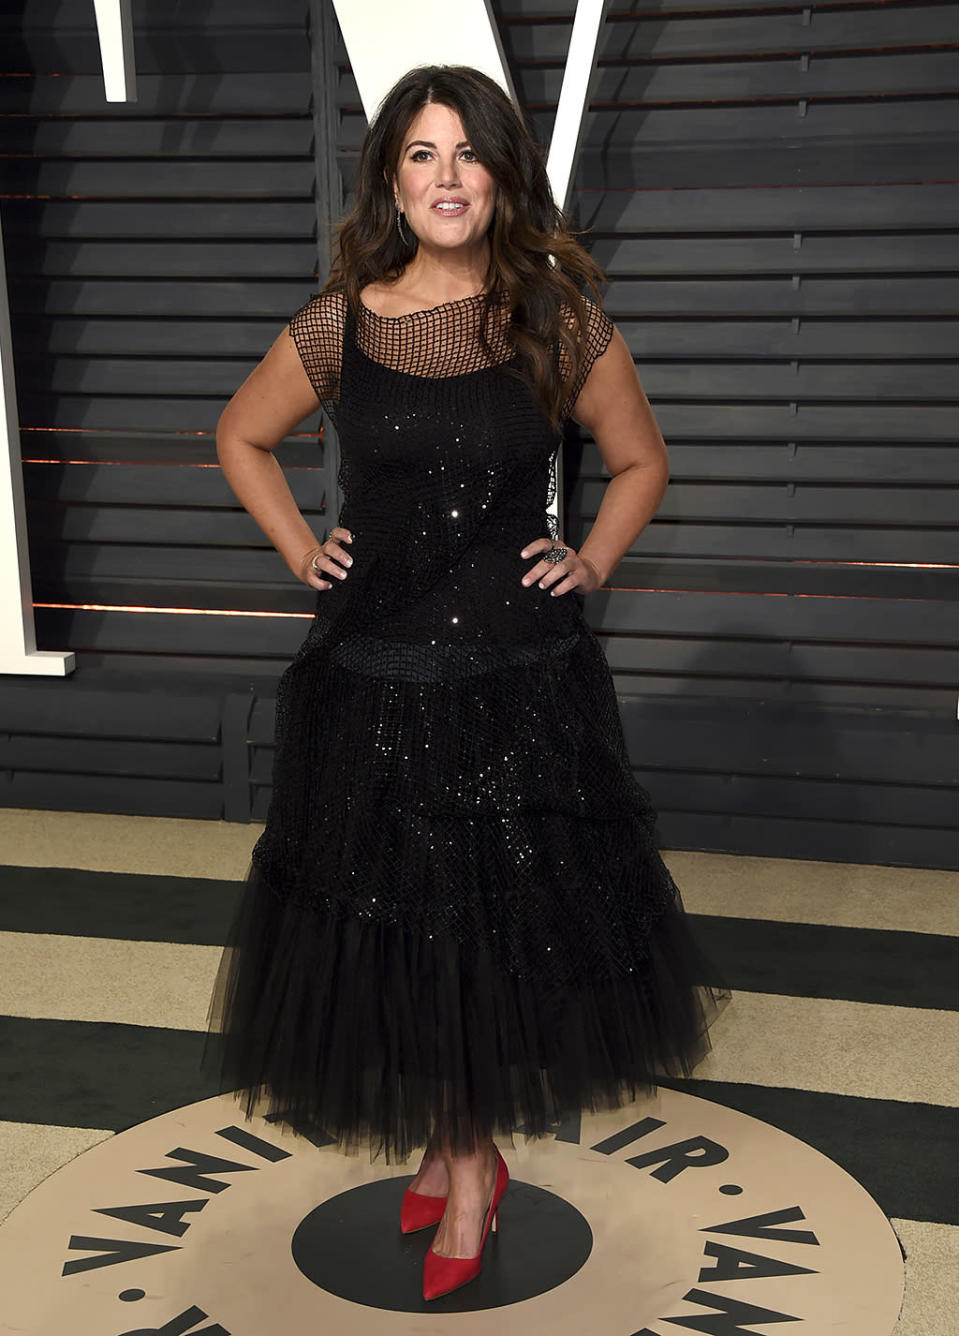 <p>Monica Lewinsky arrives at the Vanity Fair Oscar Party on Sunday, Feb. 26, 2017, in Beverly Hills, Calif. (Photo by Evan Agostini/Invision/AP) </p>